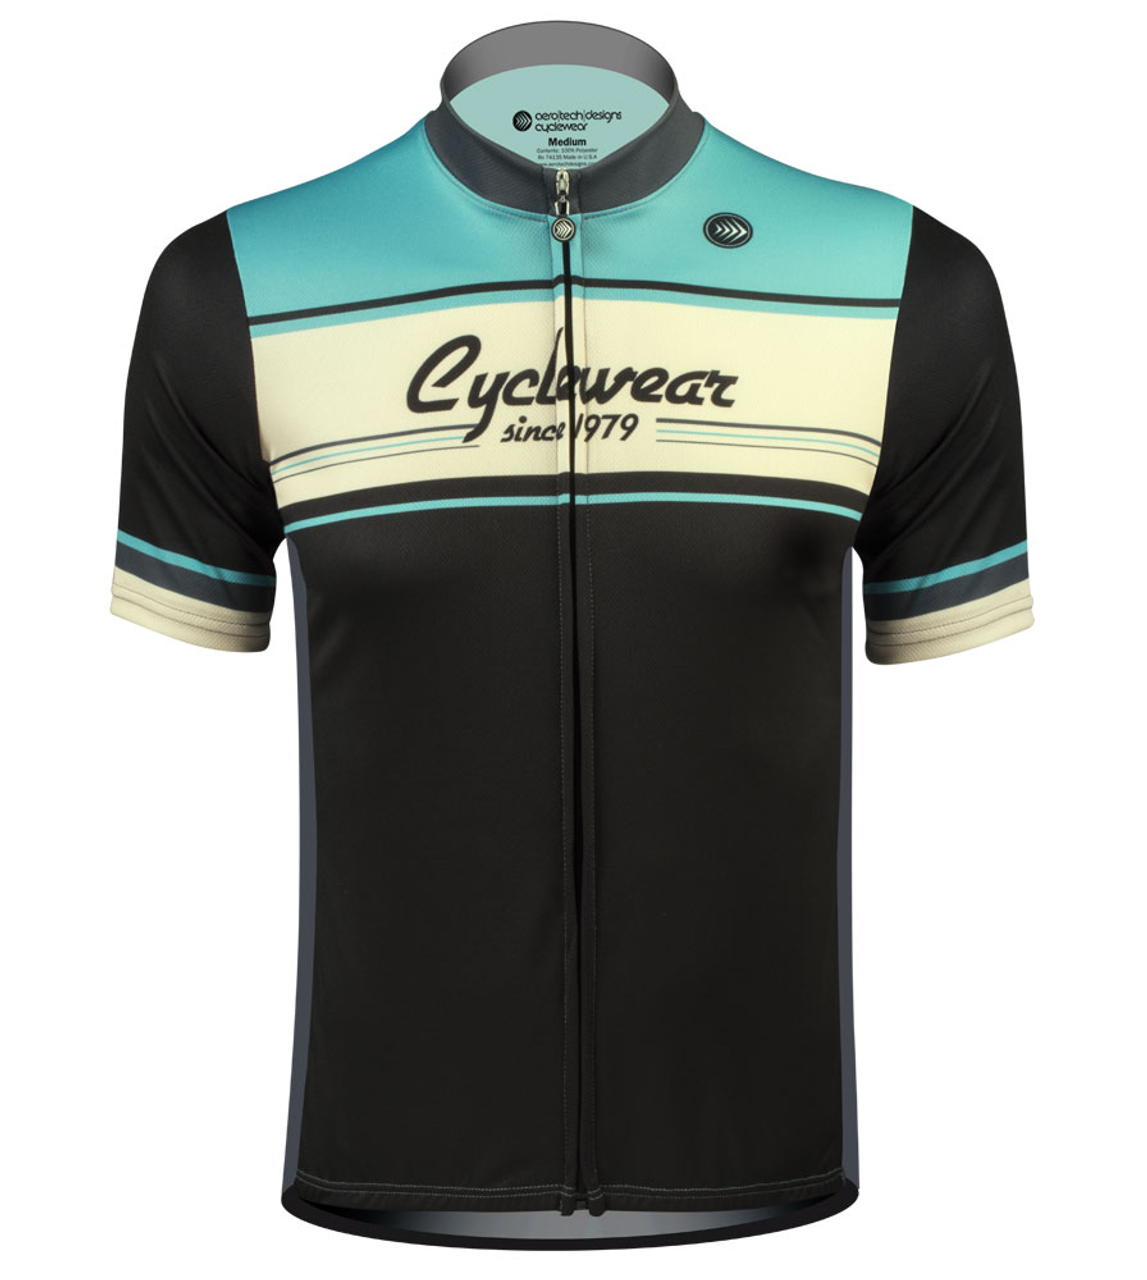 ATD Designer Retro Active Cyclewear Biking Jersey In Celeste - Two cycling kits worst designs ever